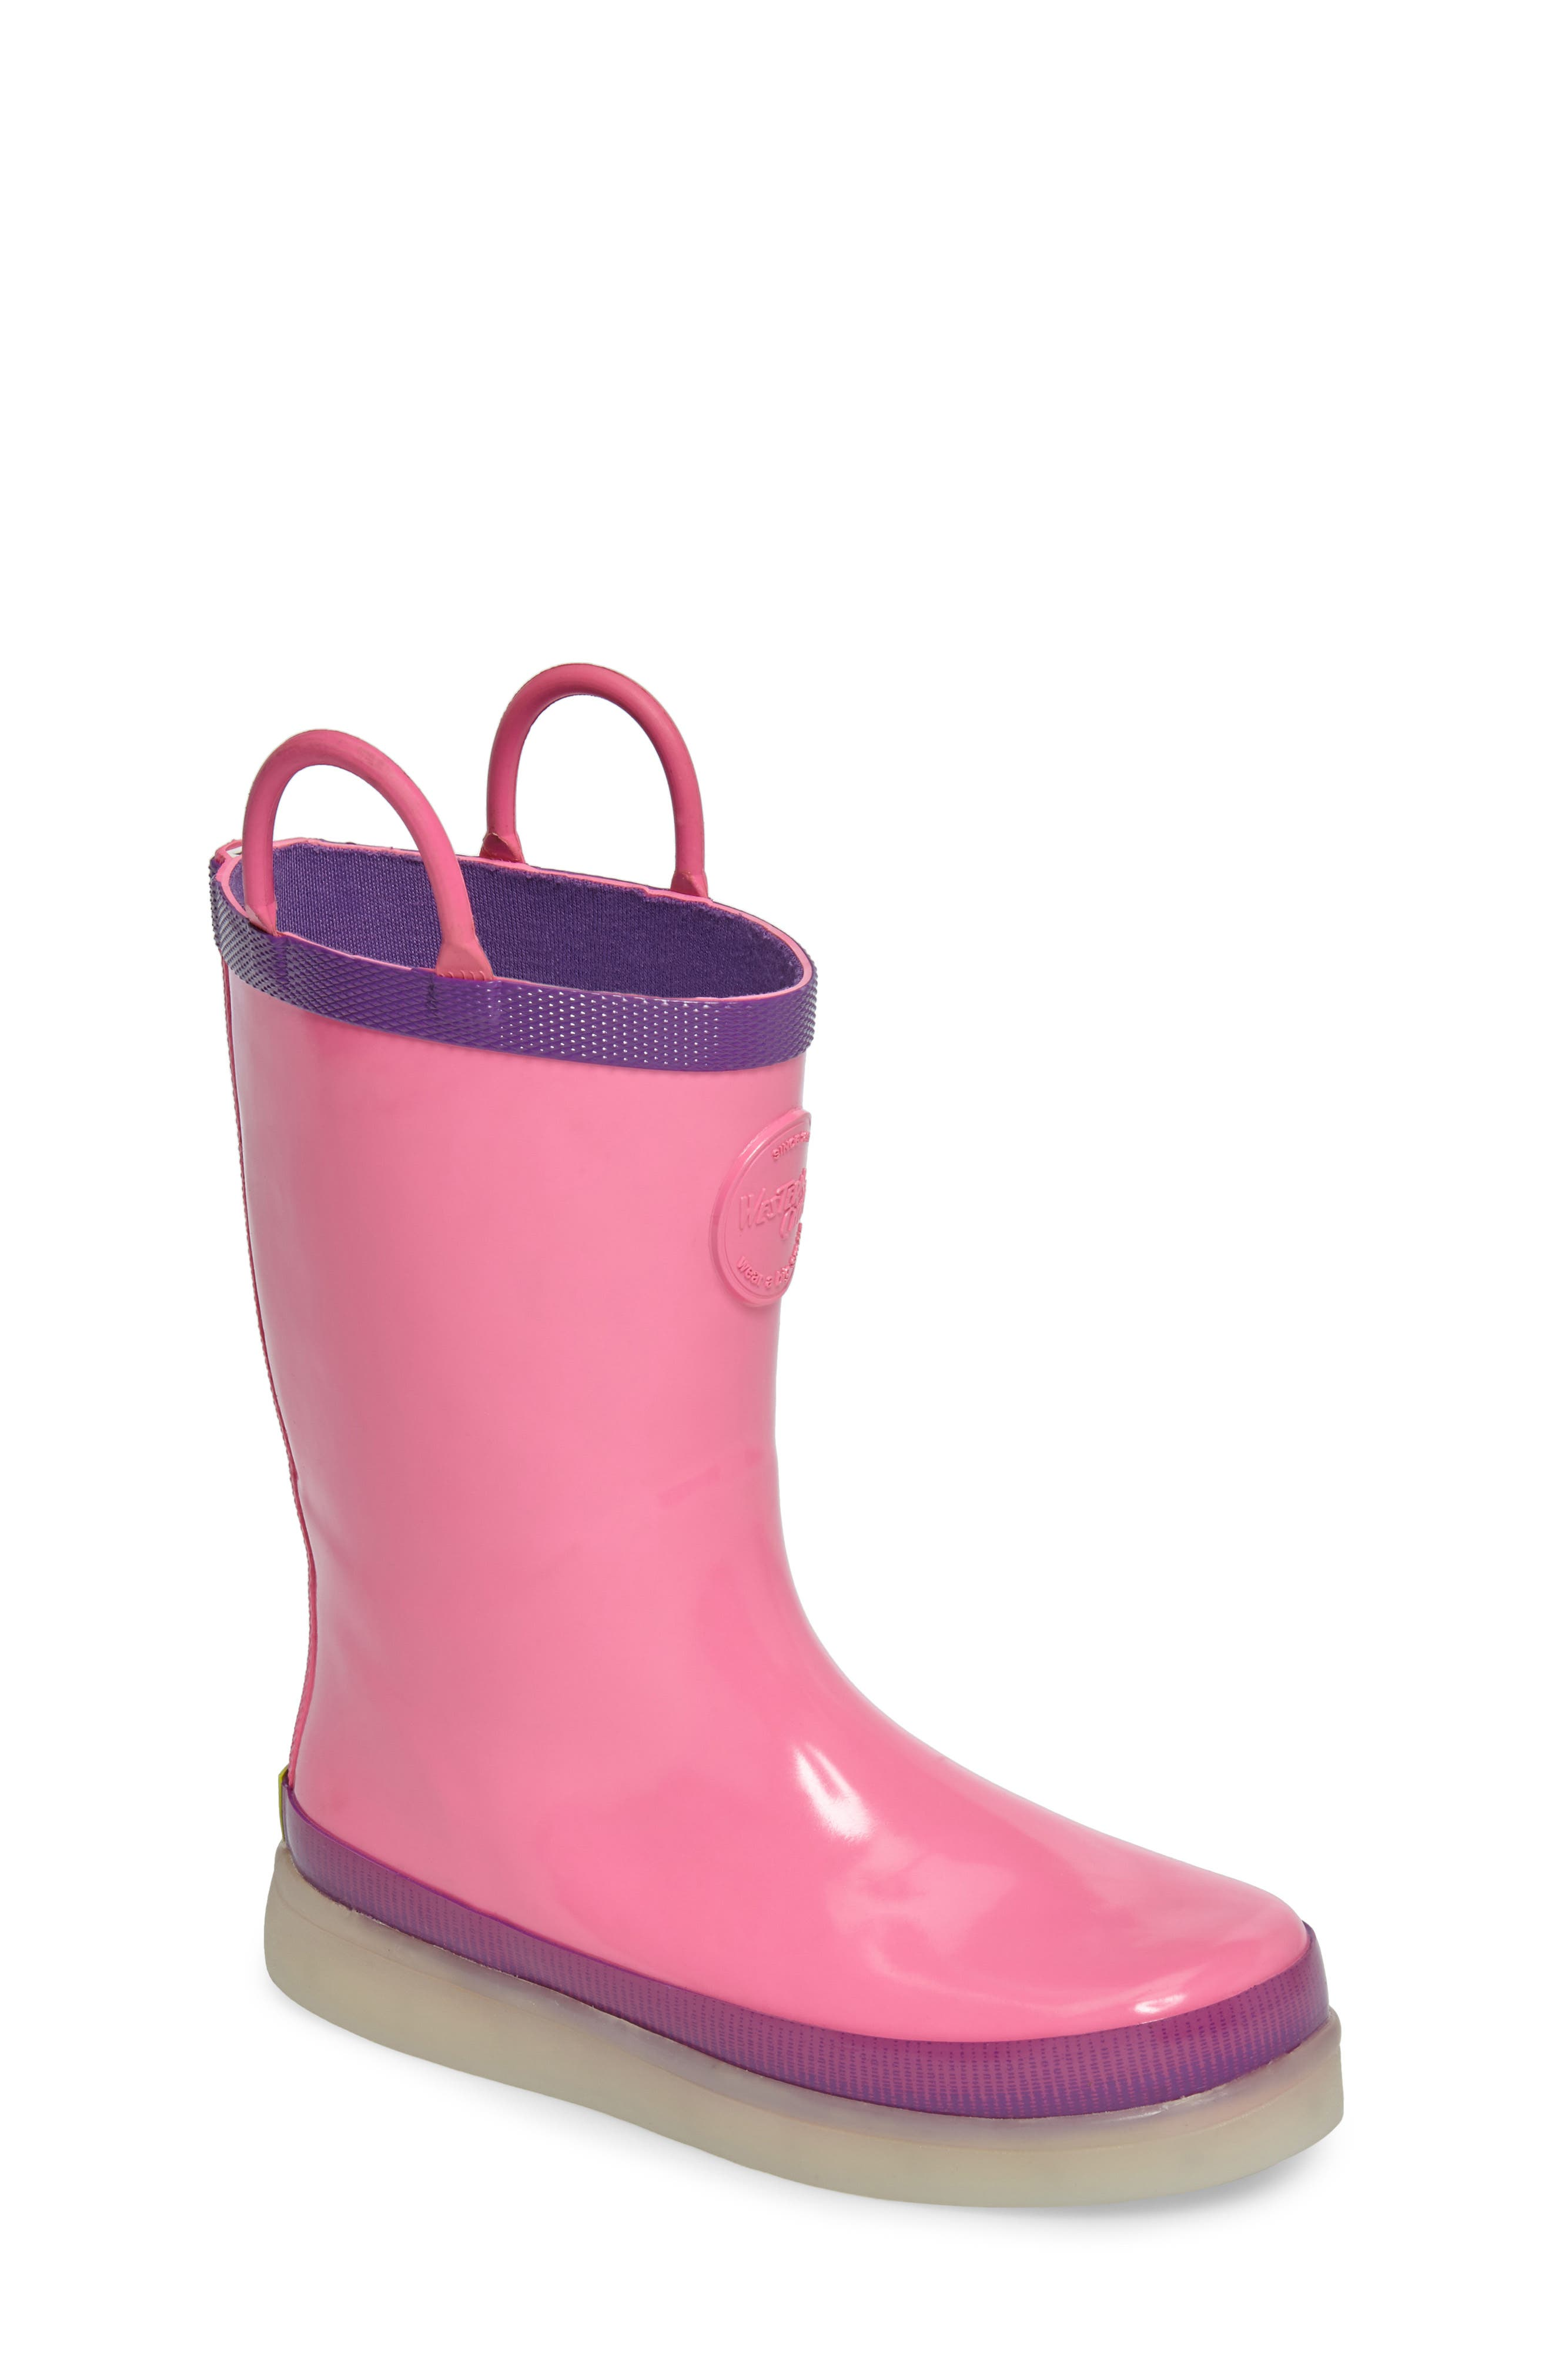 Alternate Image 1 Selected - Western Chief Tech Solid LED Rain Boot (Toddler, Little Kid & Big Kid)